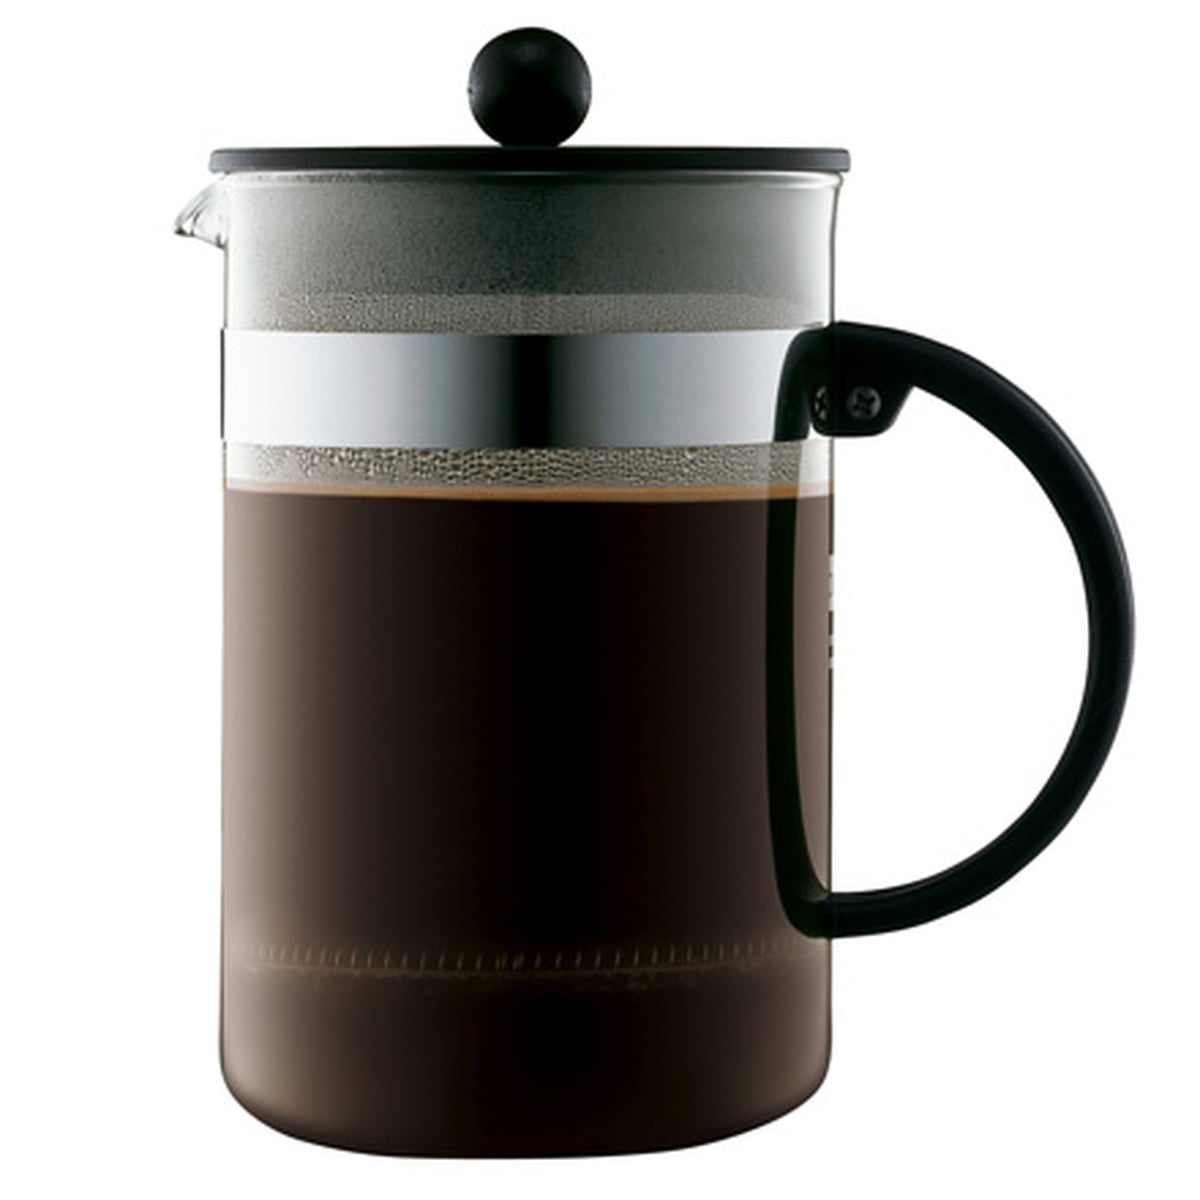 bodum coffee maker how to use